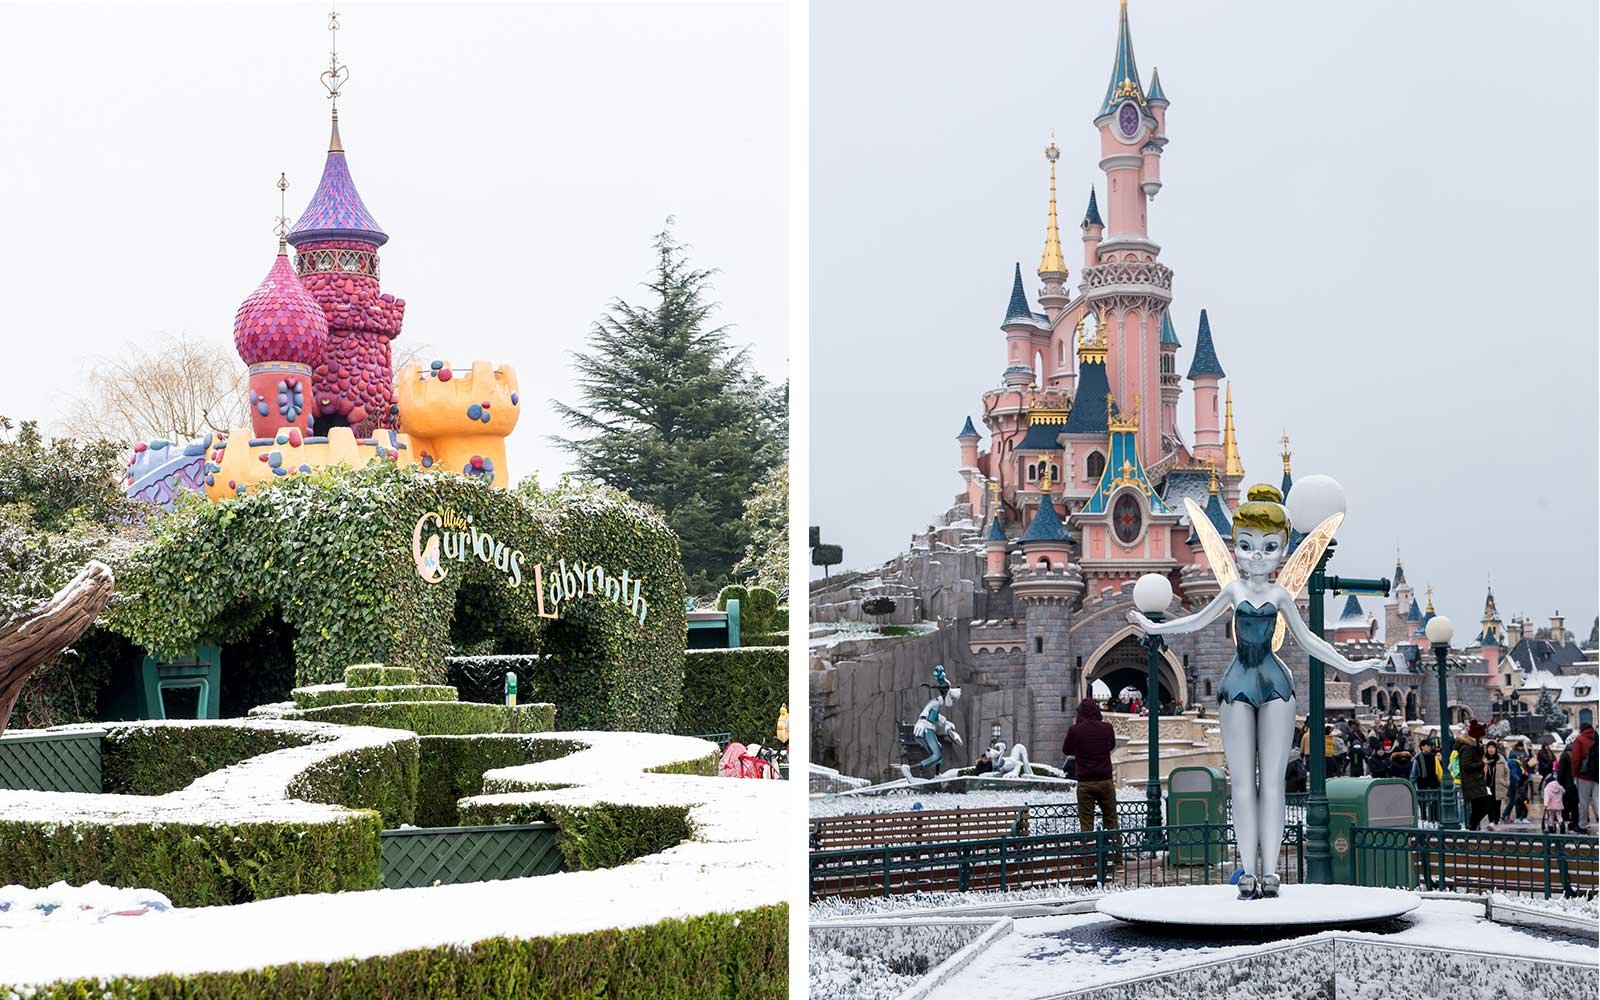 Disneyland Paris under snow 2018